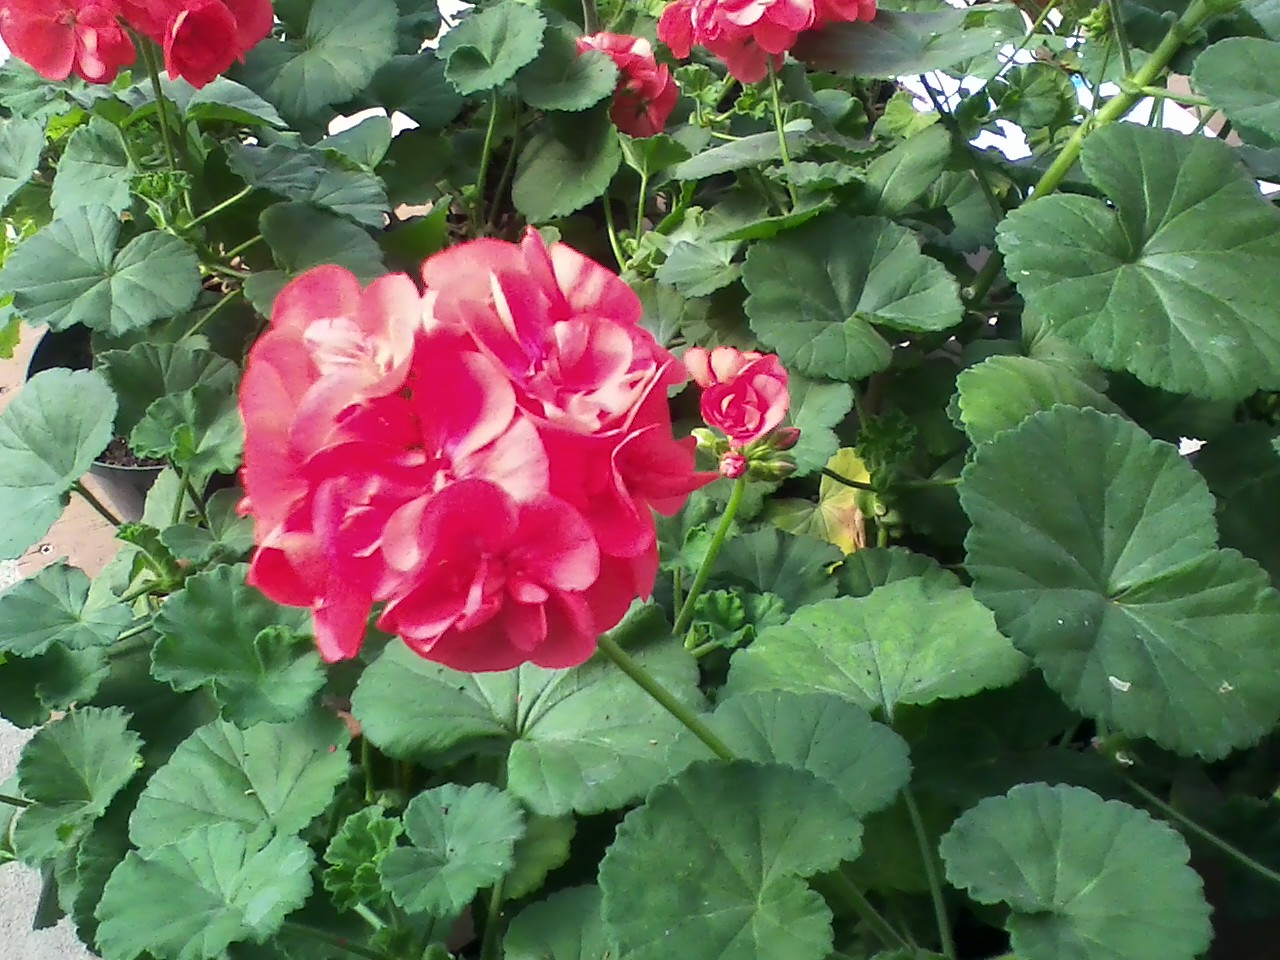 Annuals canton road garden center akron ohio izmirmasajfo